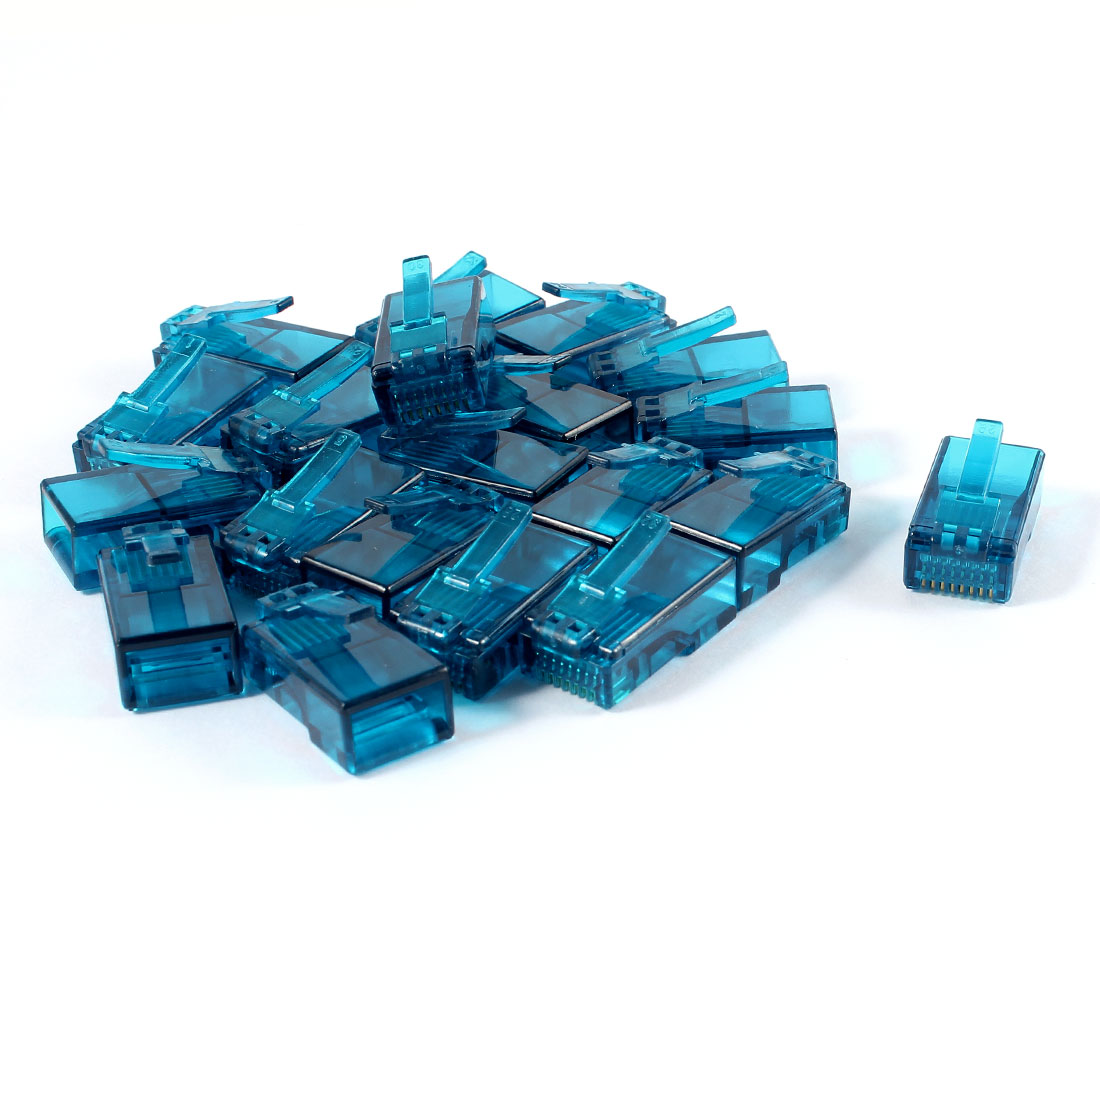 20 Pcs Teal Blue Plastic Shell RJ45 8P8C Jack Modular End Network Connector